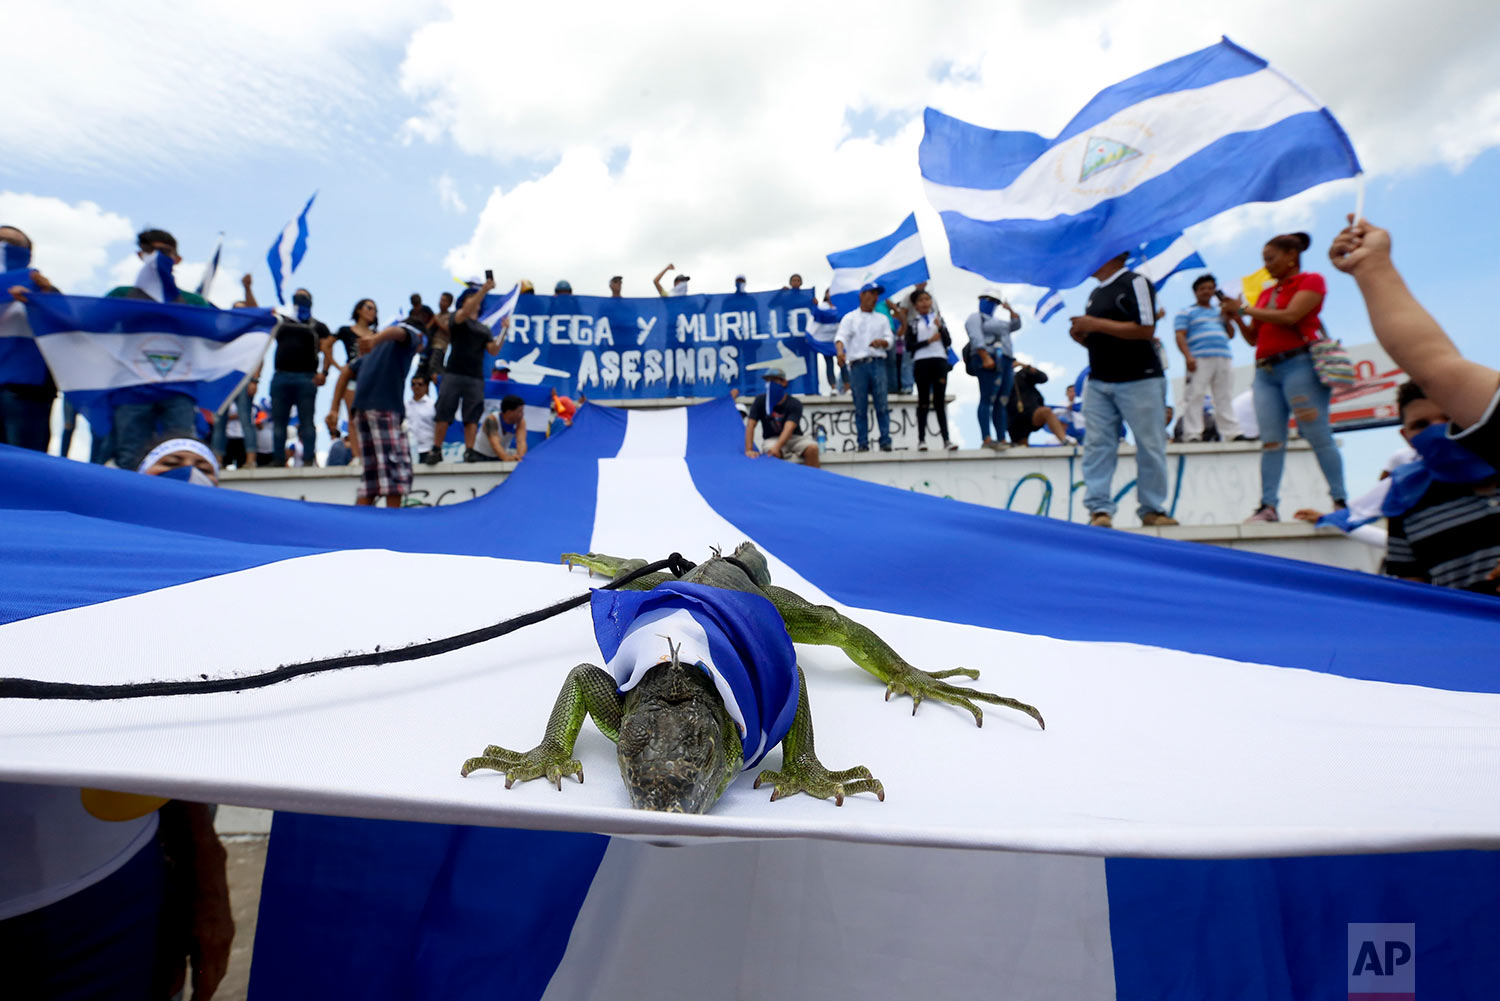 A pet iguana sits on a Nicaraguan flag during an anti-government march in support of the Catholic church in Managua, Nicaragua, July 28, 2018. Simultaneous marches of supporters of President Daniel Ortega and those opposed to his government have passed through the streets of the capital without incident. (AP Photo/Alfredo Zuniga)